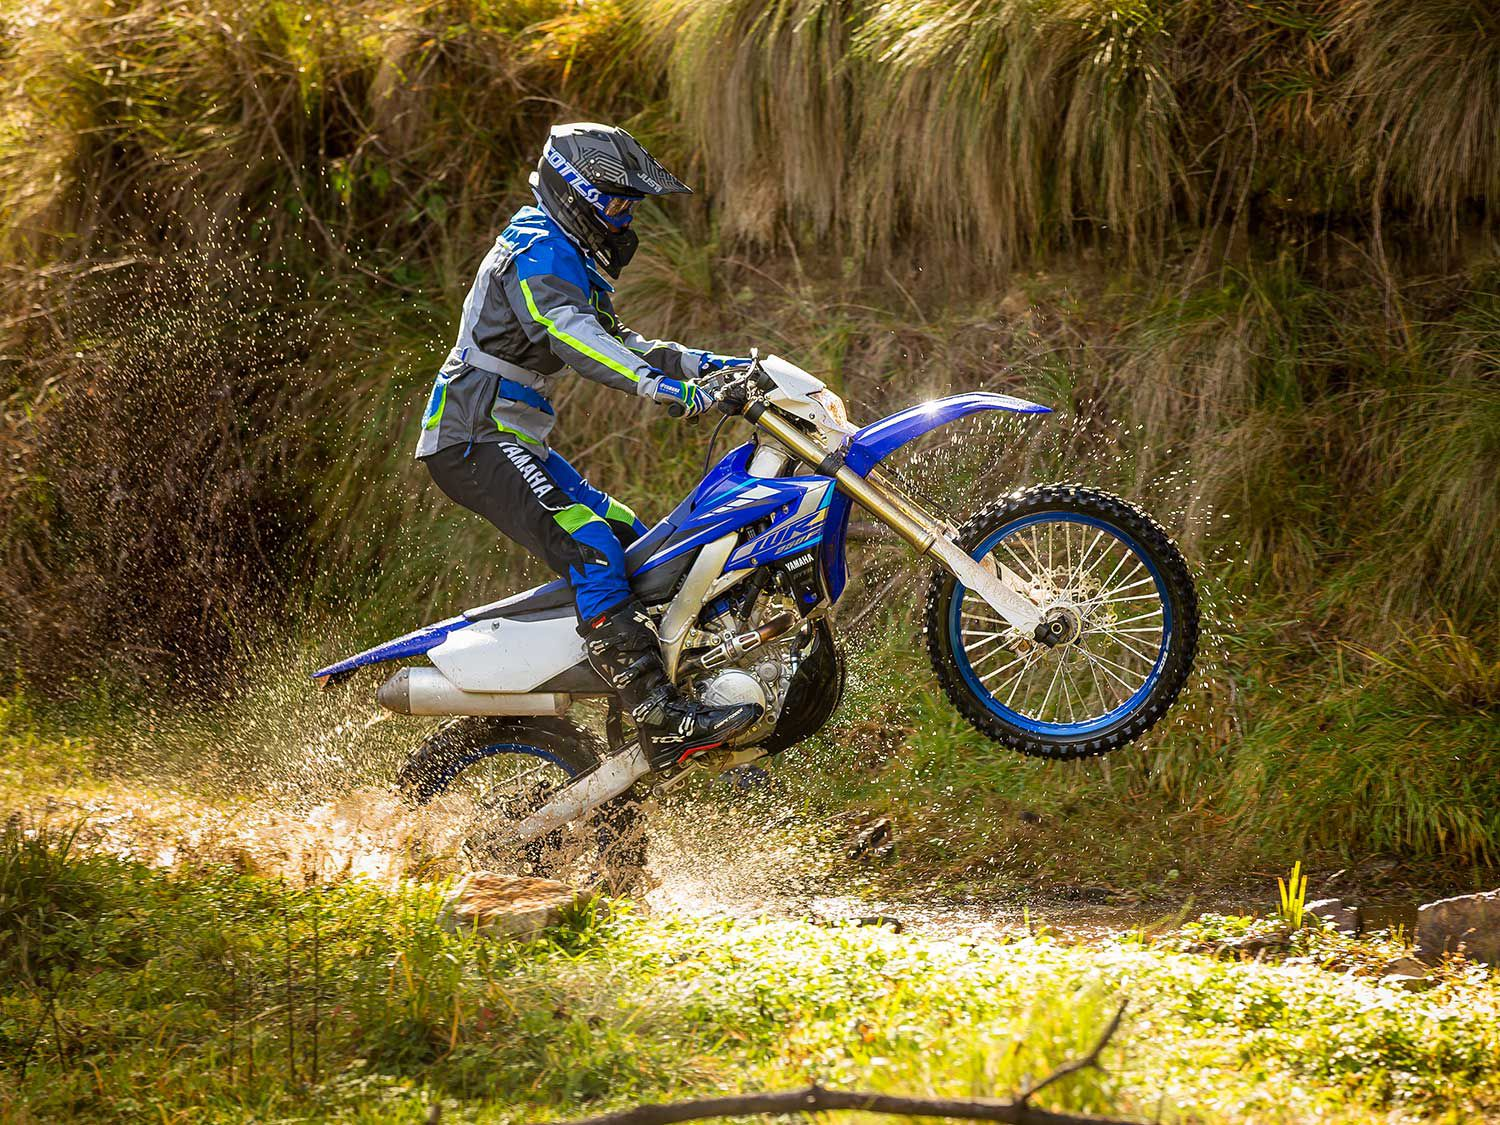 "<a href=""https://www.motorcyclistonline.com/2020-yamaha-wr250f-first-look-preview/"">2020 Yamaha WR250F First Look Preview</a>"